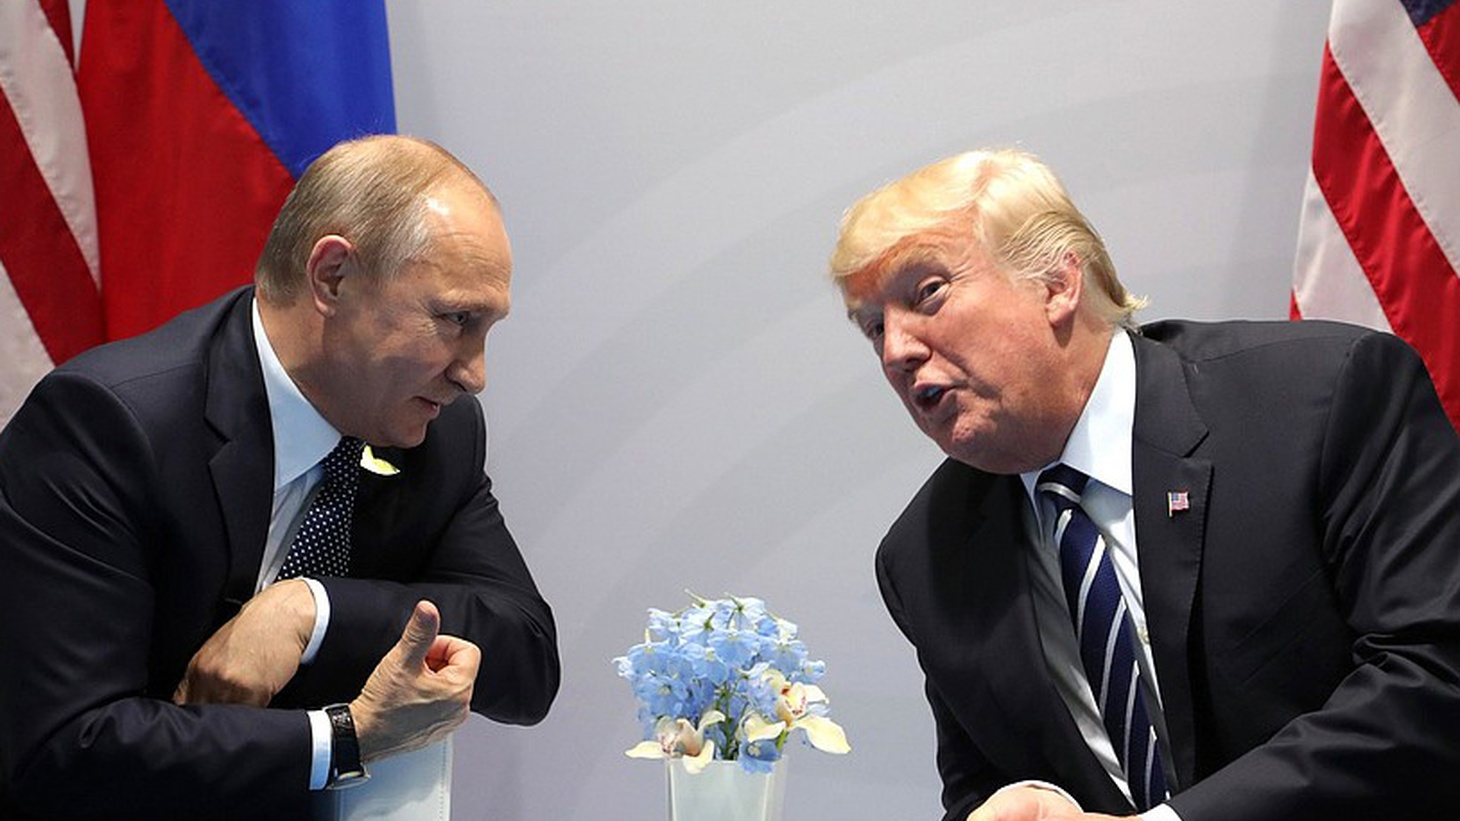 Overshadowing other news at the G-20 is the first meeting of Presidents Trump and Putin at the G-20 Summit in Hamburg Germany. The leaders met behind closed doors for two hours and 16 minutes -- more than twice what had been expected.